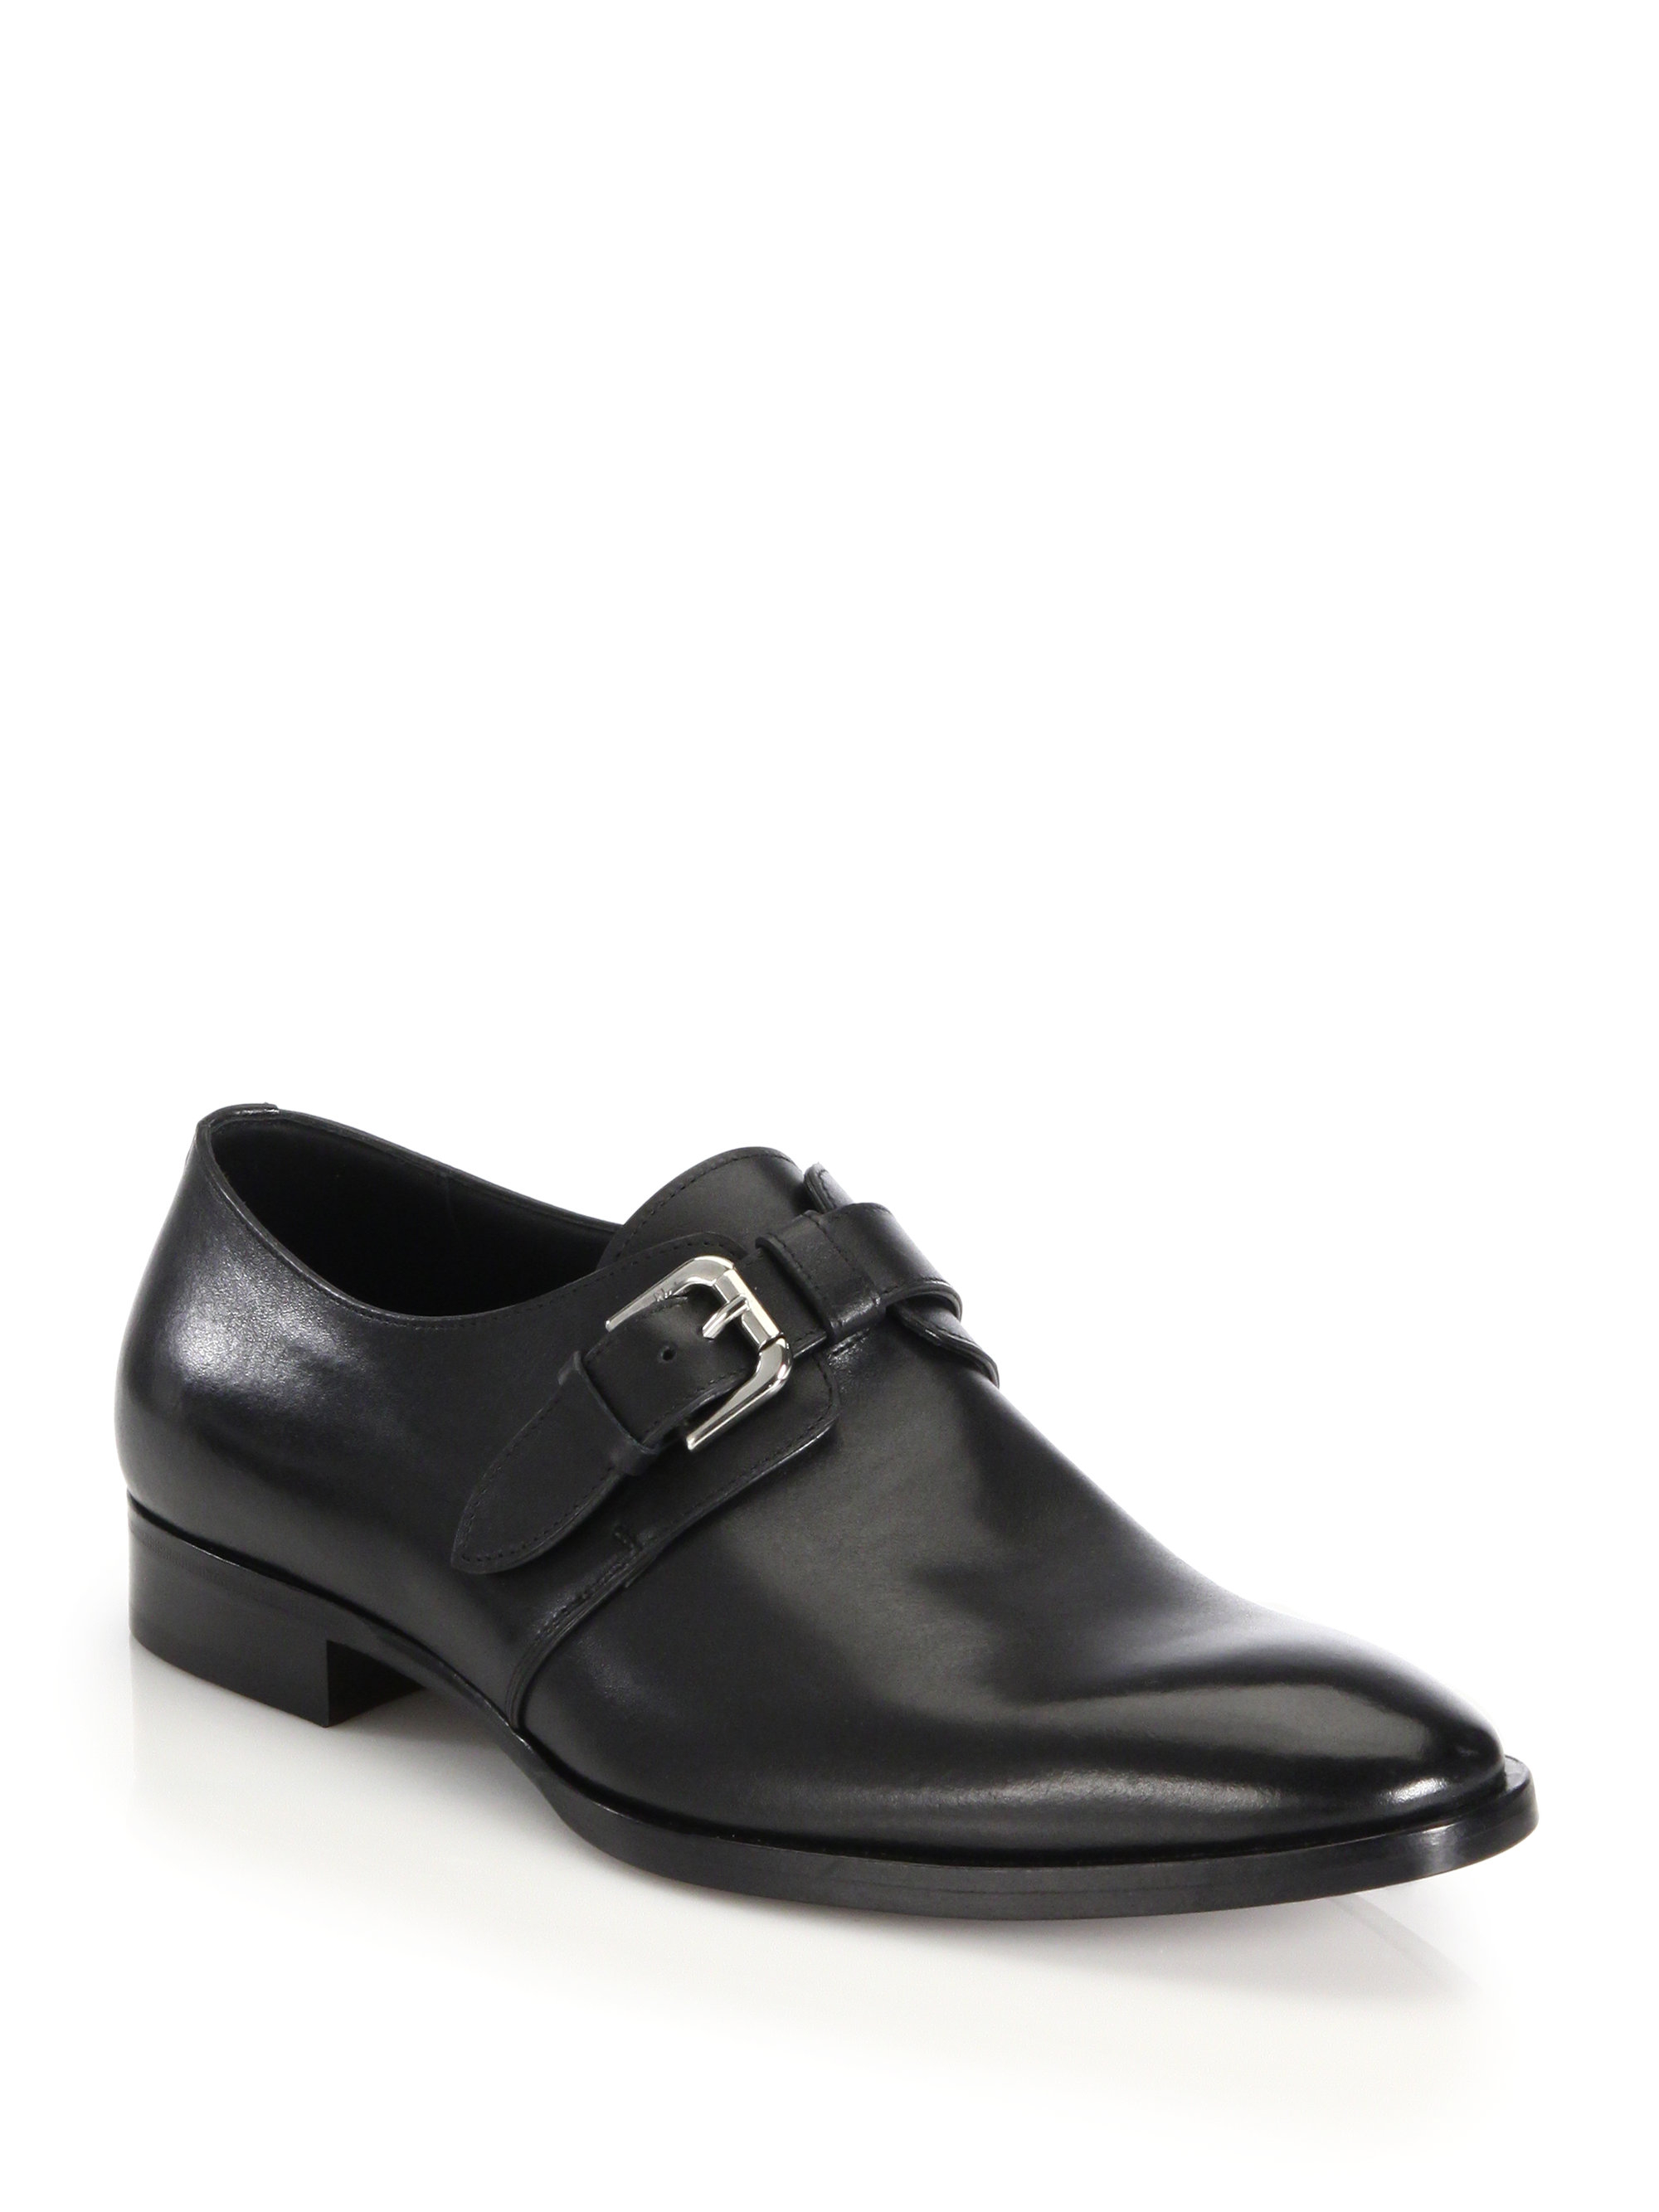 Cole Haan Pinch GRAND O/S Penny Loafer, Black